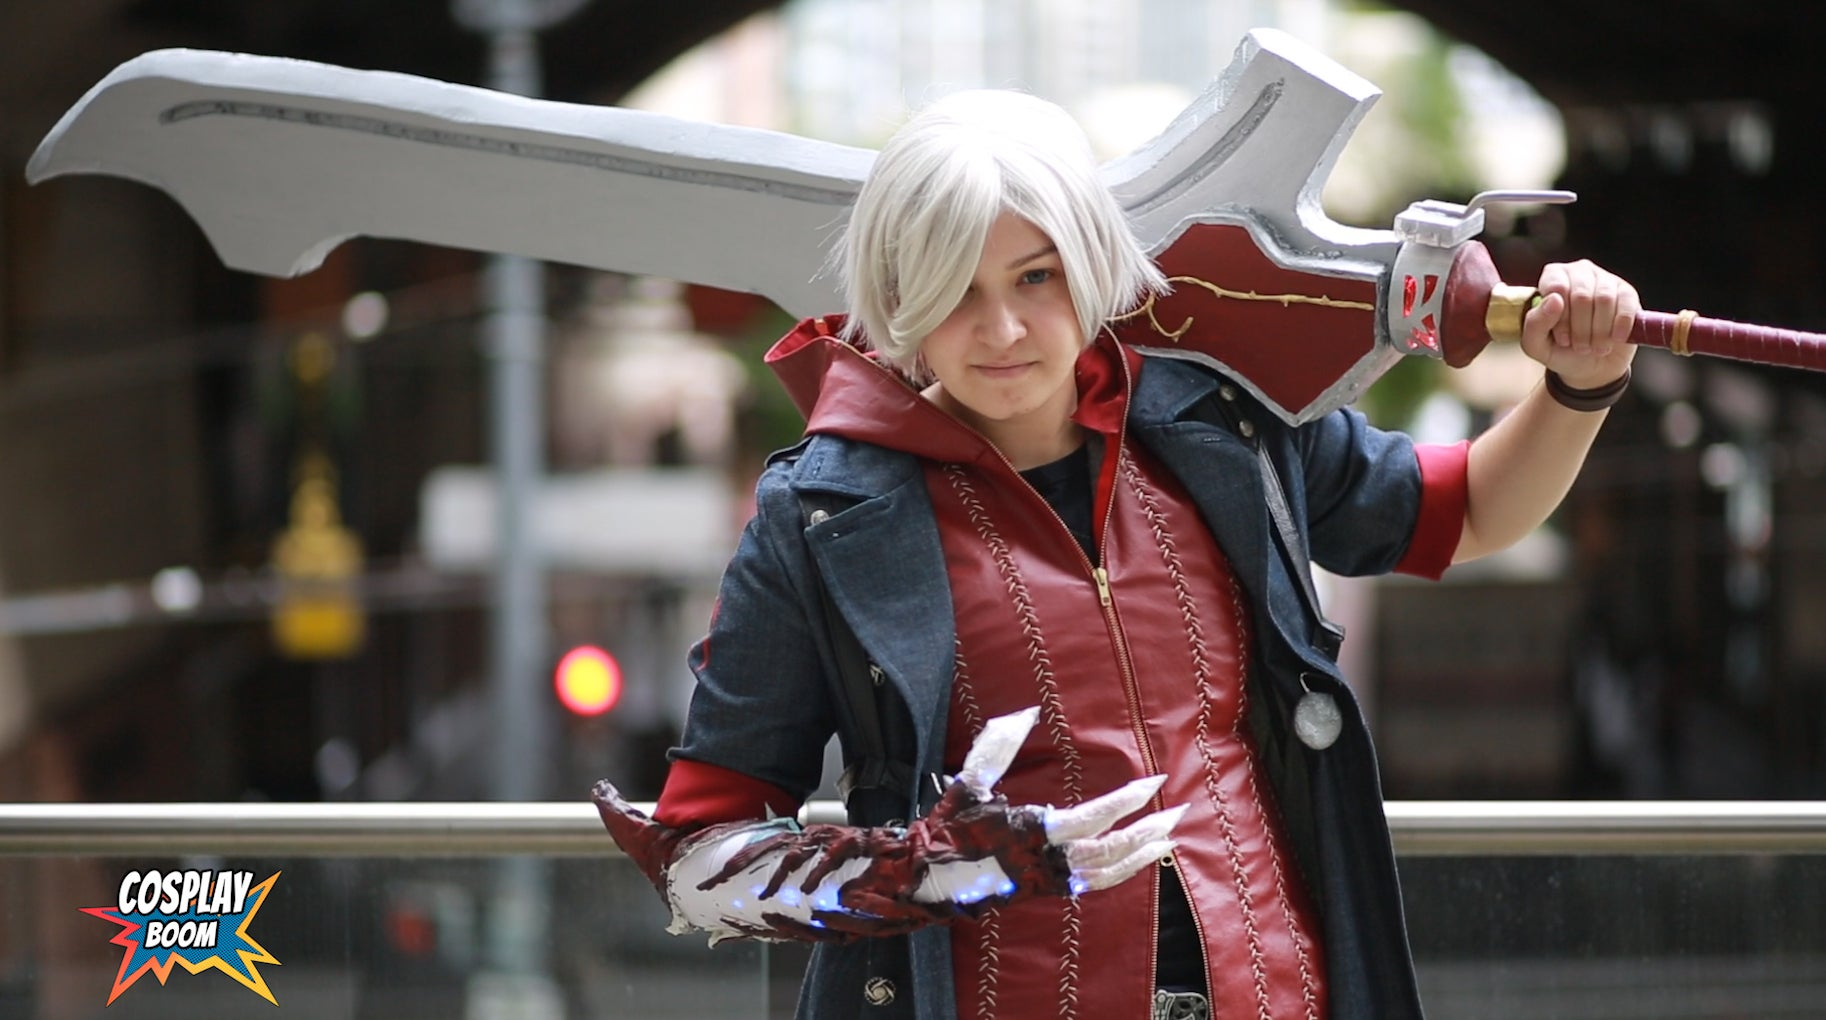 The Coolest Cosplay at PAX Prime, Day 1